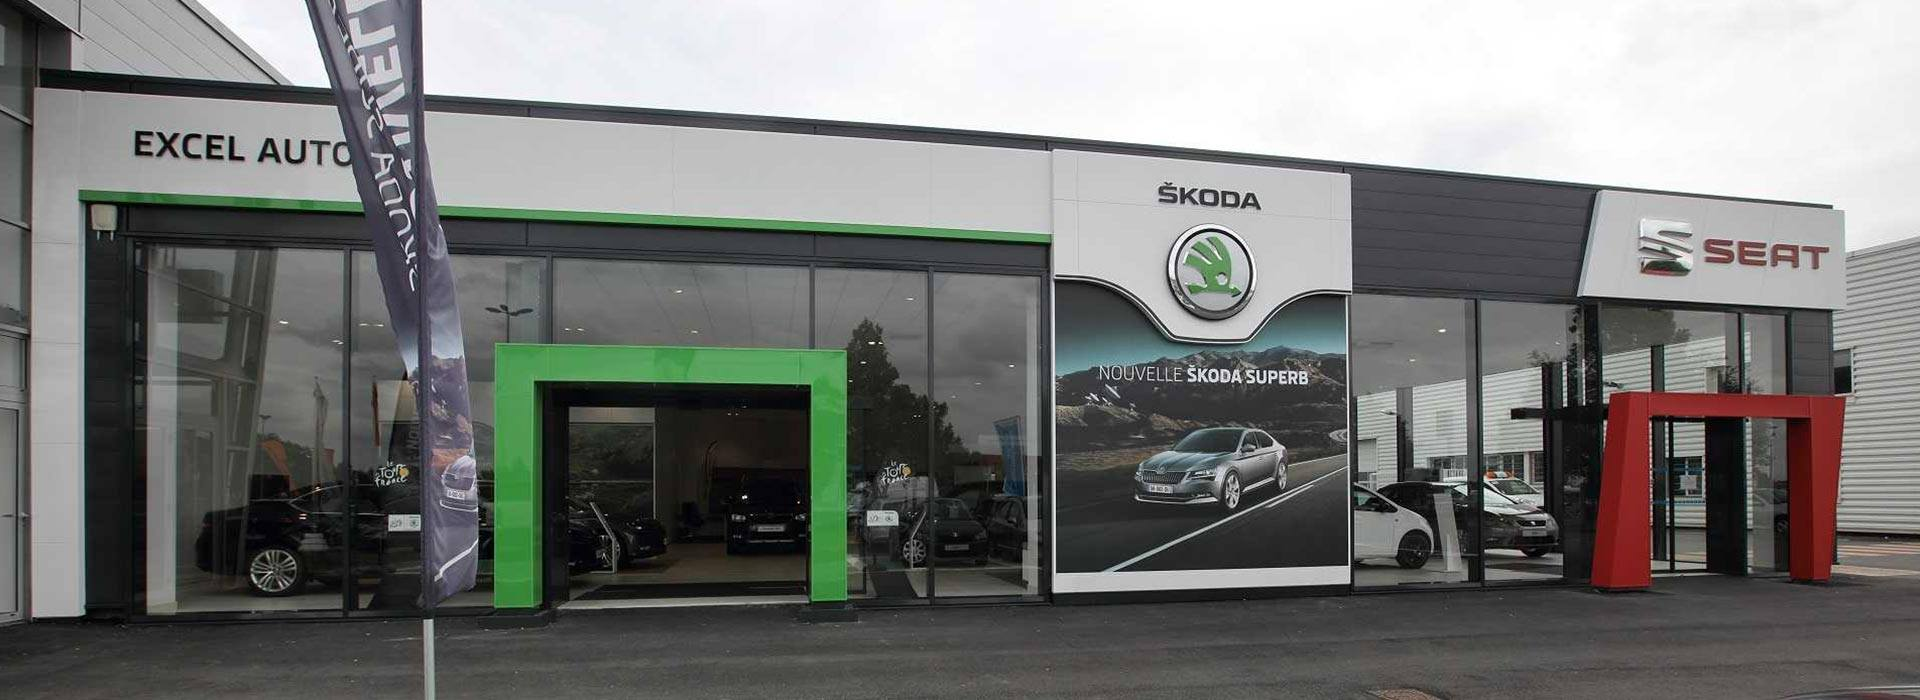 skoda poitiers concessionnaire garage vienne 86. Black Bedroom Furniture Sets. Home Design Ideas